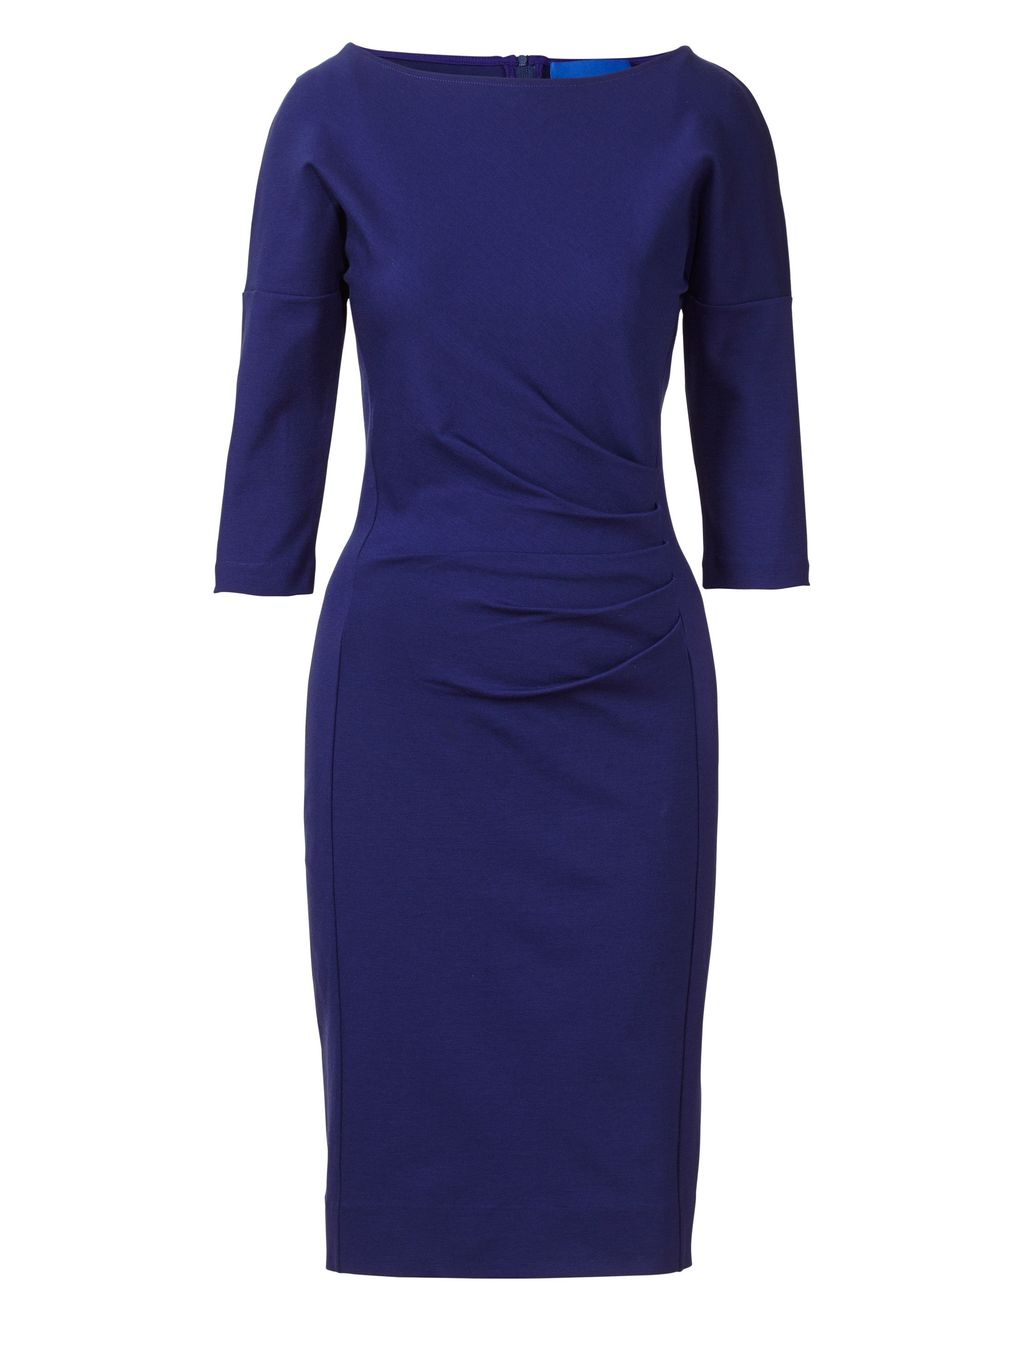 Miracle Dress, Blue - style: shift; neckline: slash/boat neckline; fit: tailored/fitted; pattern: plain; waist detail: flattering waist detail; predominant colour: royal blue; occasions: evening, work, occasion, creative work; length: just above the knee; fibres: cotton - 100%; sleeve length: 3/4 length; sleeve style: standard; texture group: cotton feel fabrics; pattern type: fabric; season: s/s 2016; wardrobe: highlight